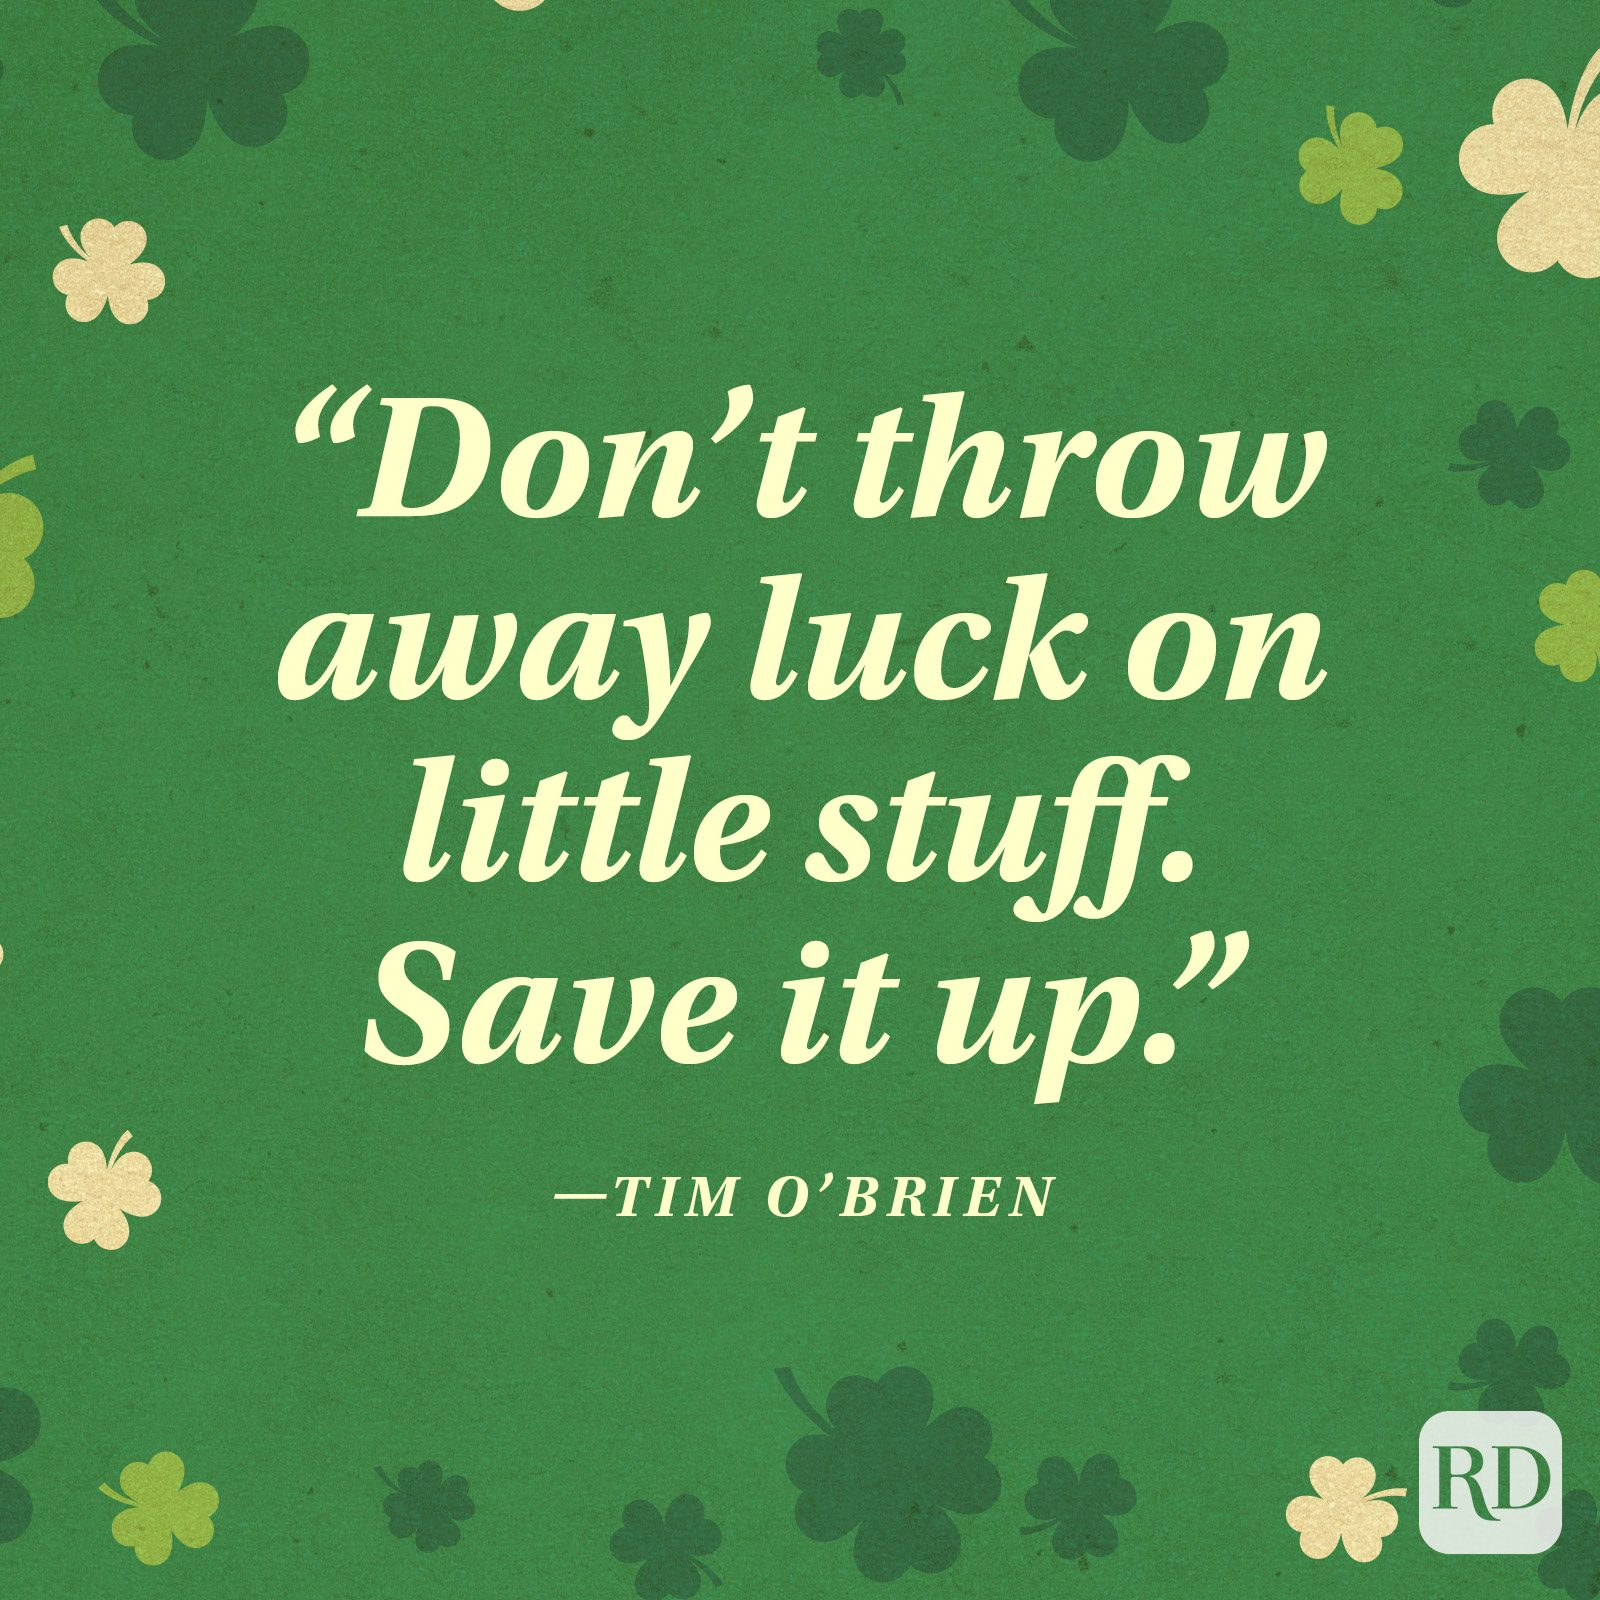 """Don't throw away luck on little stuff. Save it up."" —Tim O'Brien"